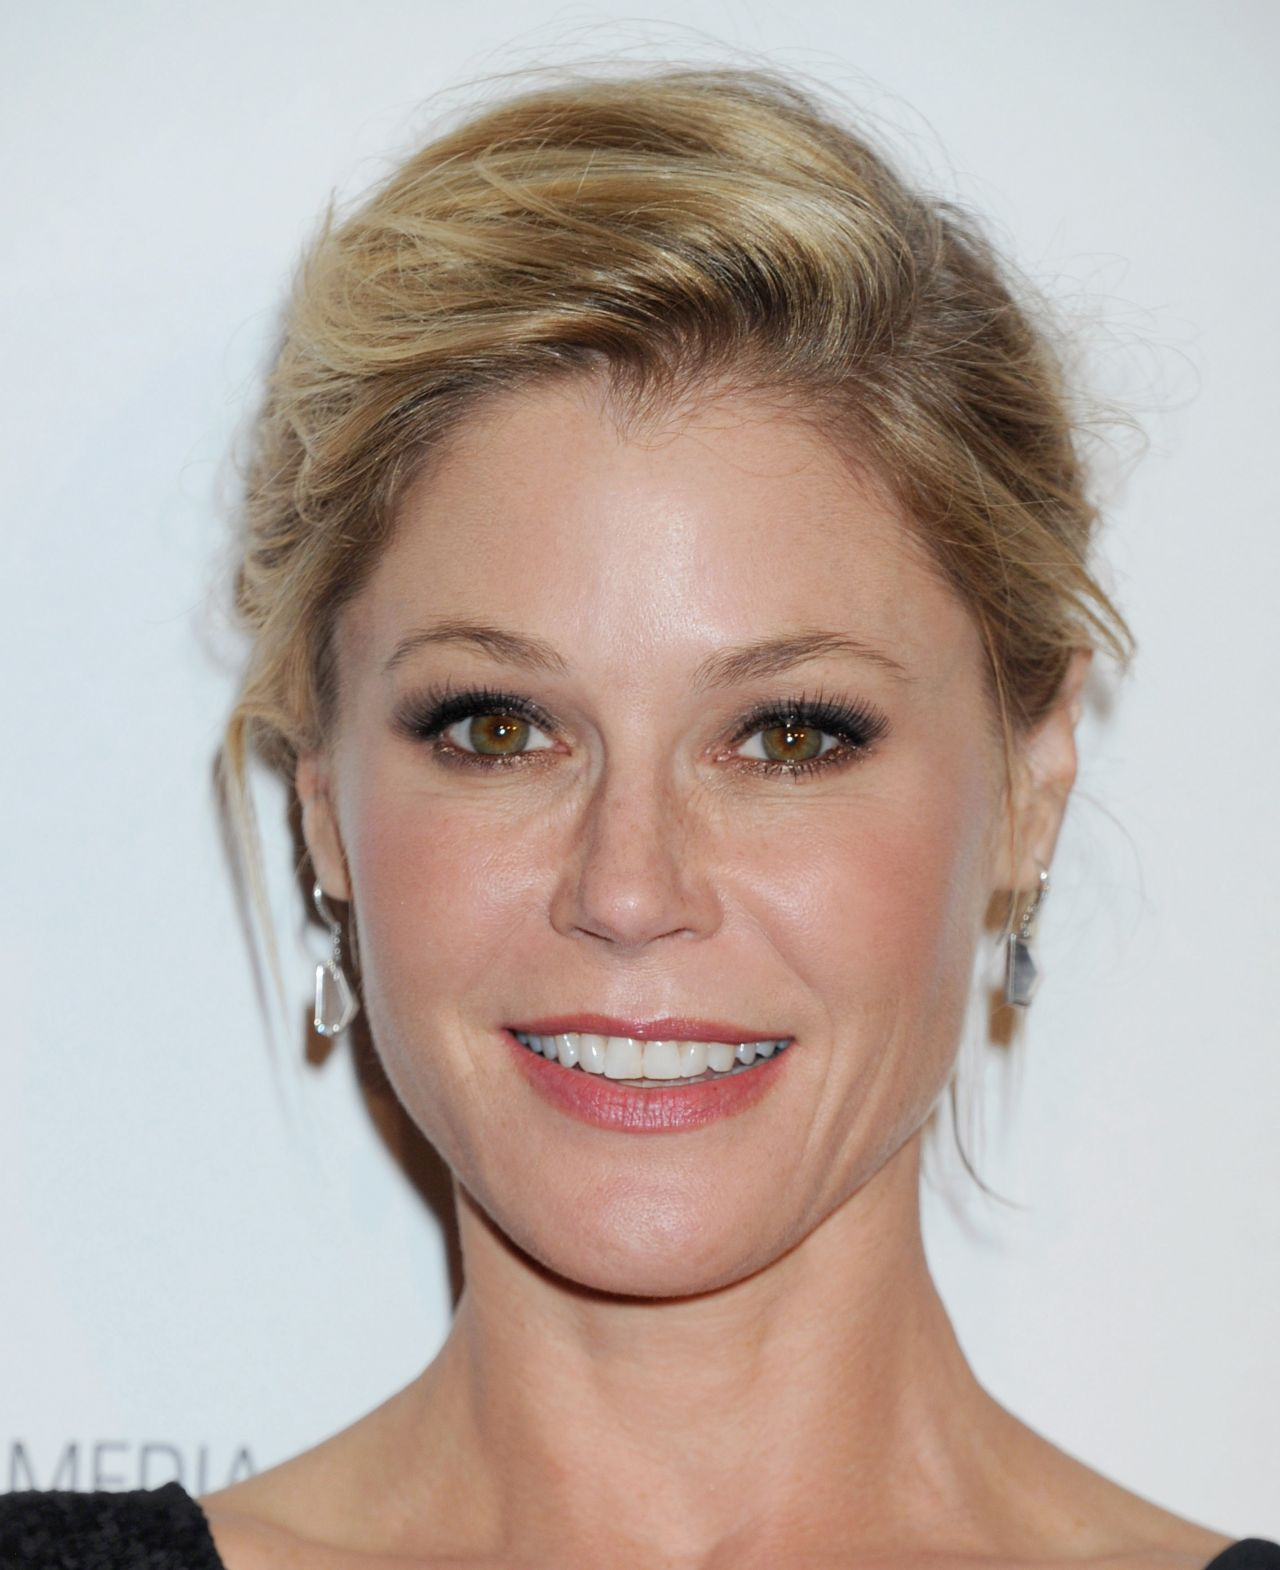 bowen women Check out julie bowen nude plus all your favorite celebs here at mr skin, home of the hottest naked celebrity pics and sex scenes.